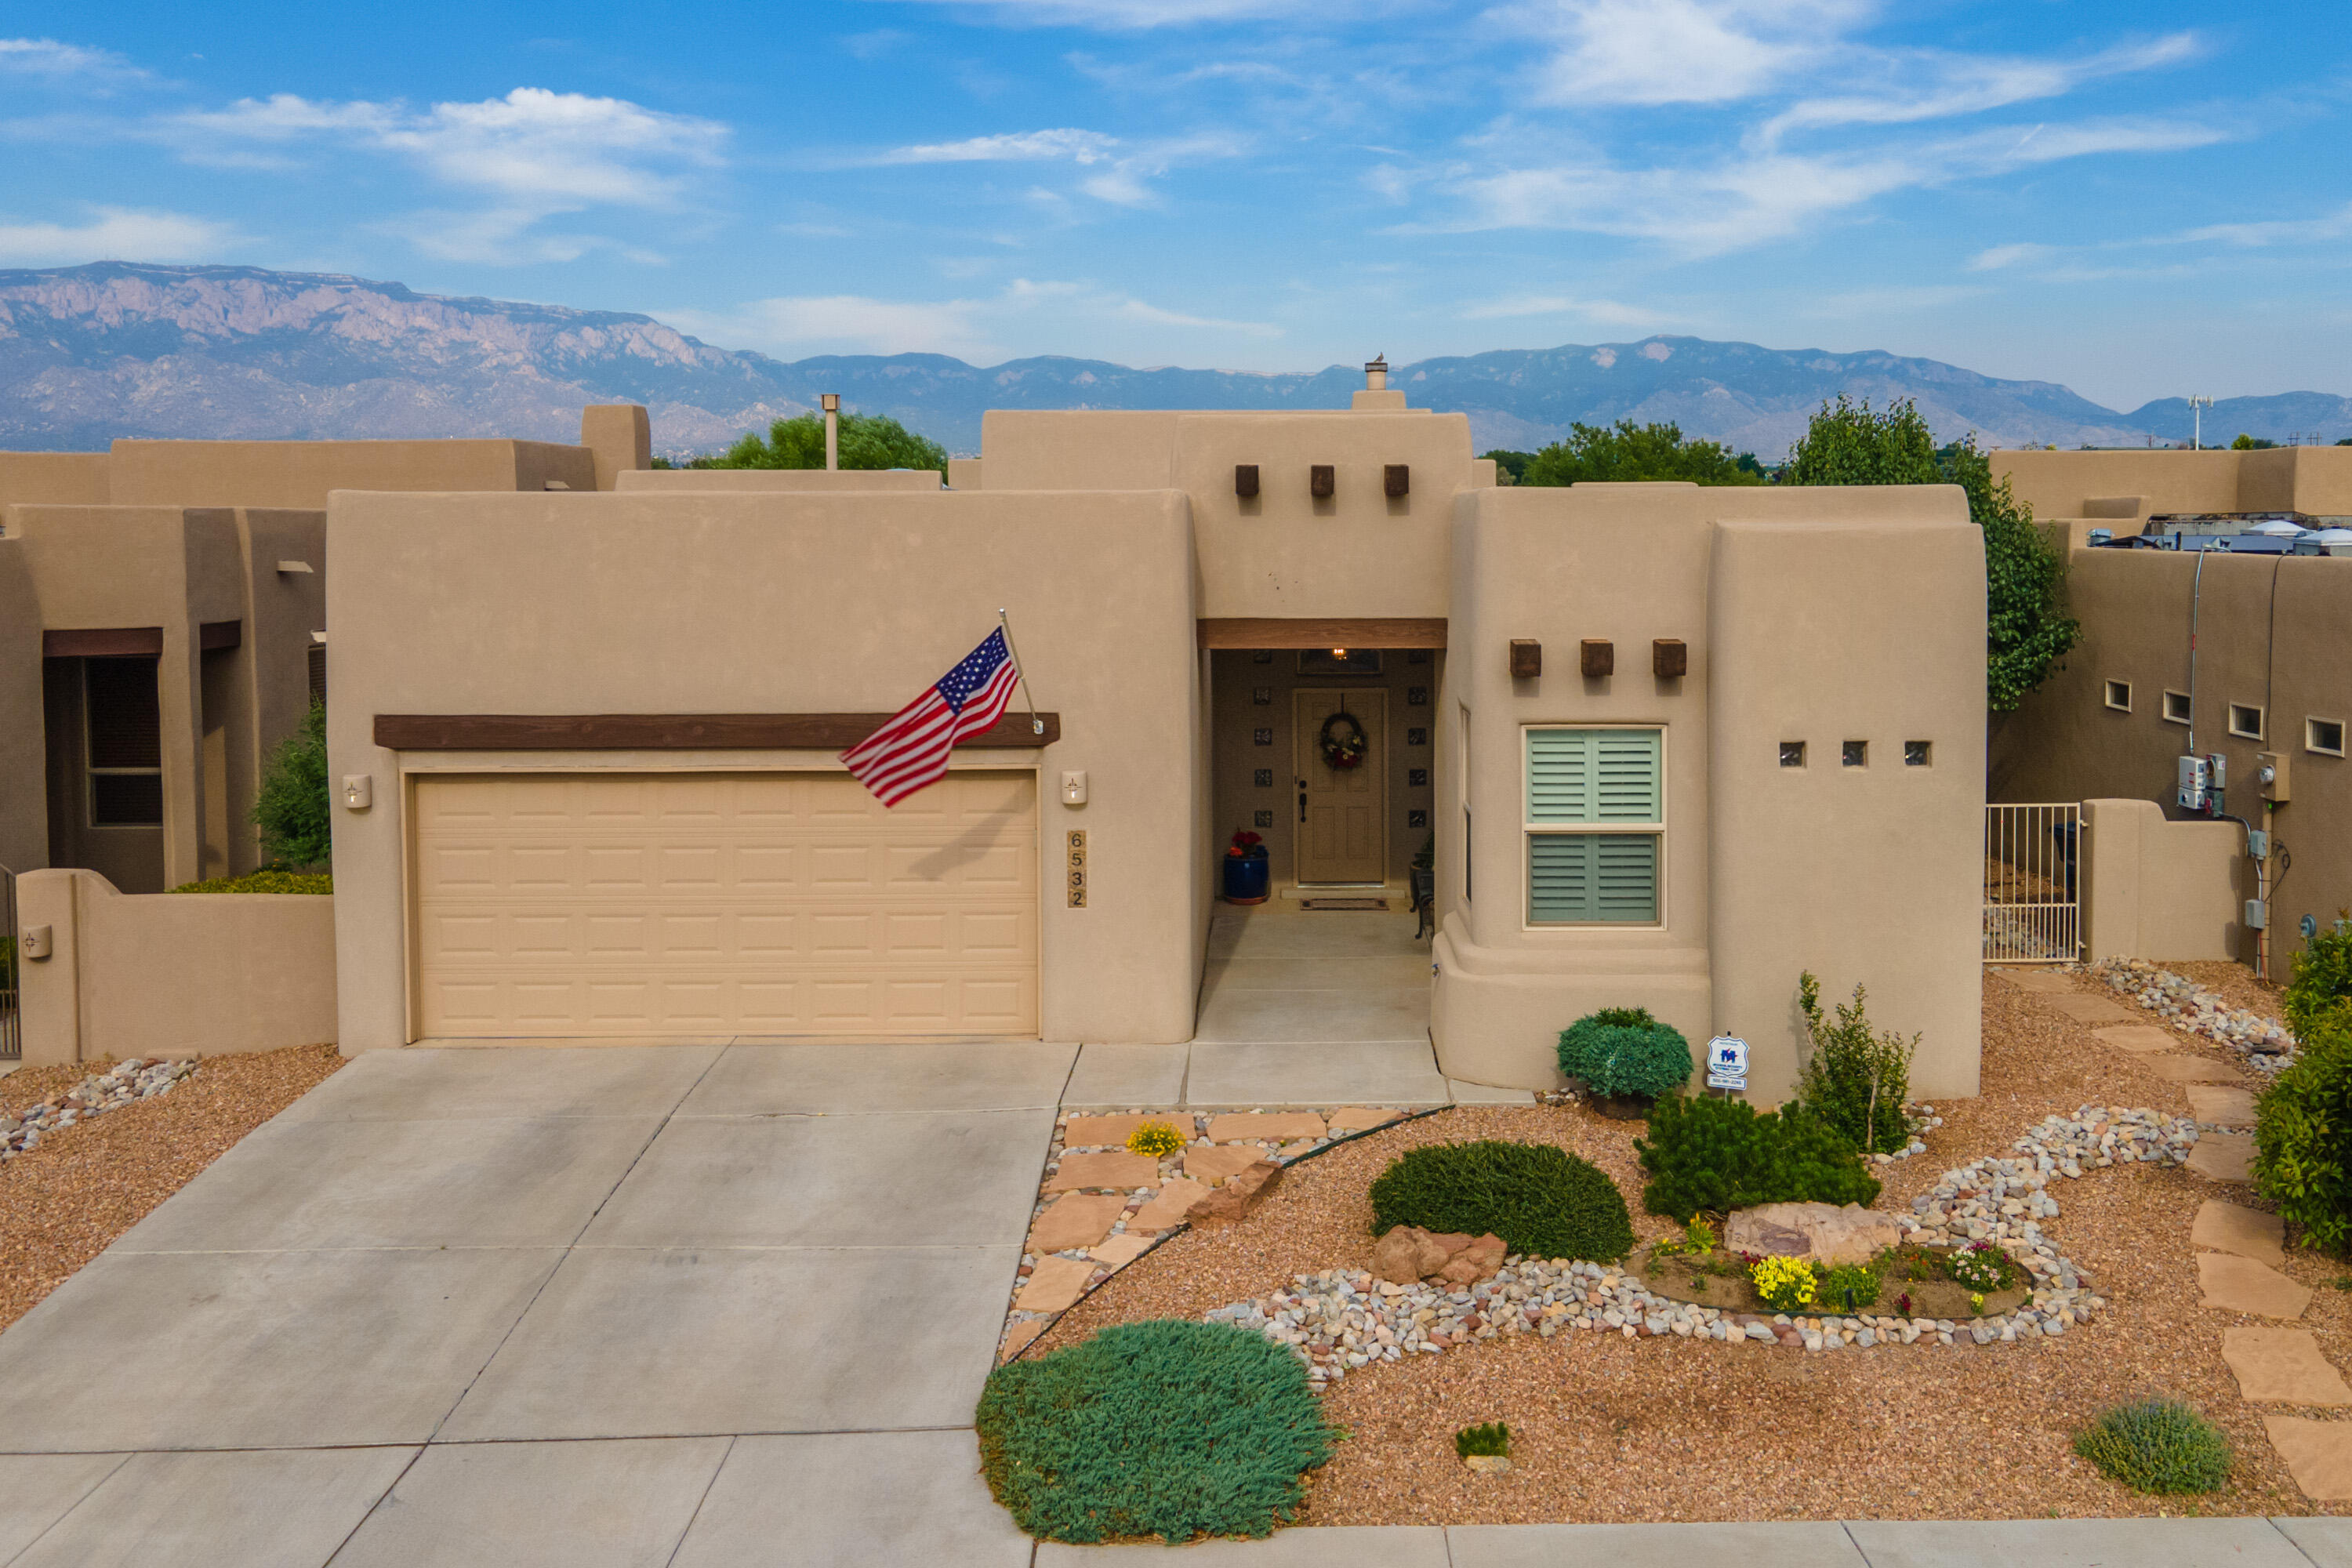 Open House this weekend Saturday (11:00 am to 3:00 pm) and Sunday (12:00 pm to 4:00 pm). Beautiful 3 bedroom, 2 bath home in gated community in Vista Del Norte.  High ceilings in den/great room. Gas log/wood burning kiva fireplace. Beautiful kitchen with large pantry. Master bedroom separate from other bedrooms.  Jacuzzi tub in master bathroom, double sinks. Laundry room with built in cabinets. Washer and dryer are negotiable. Enlarged covered patio, professional landscaping, easy maintenance lawn. Refrigerated air. Backyard Mountain Views. Water feature. Soccer park/playground across the street.